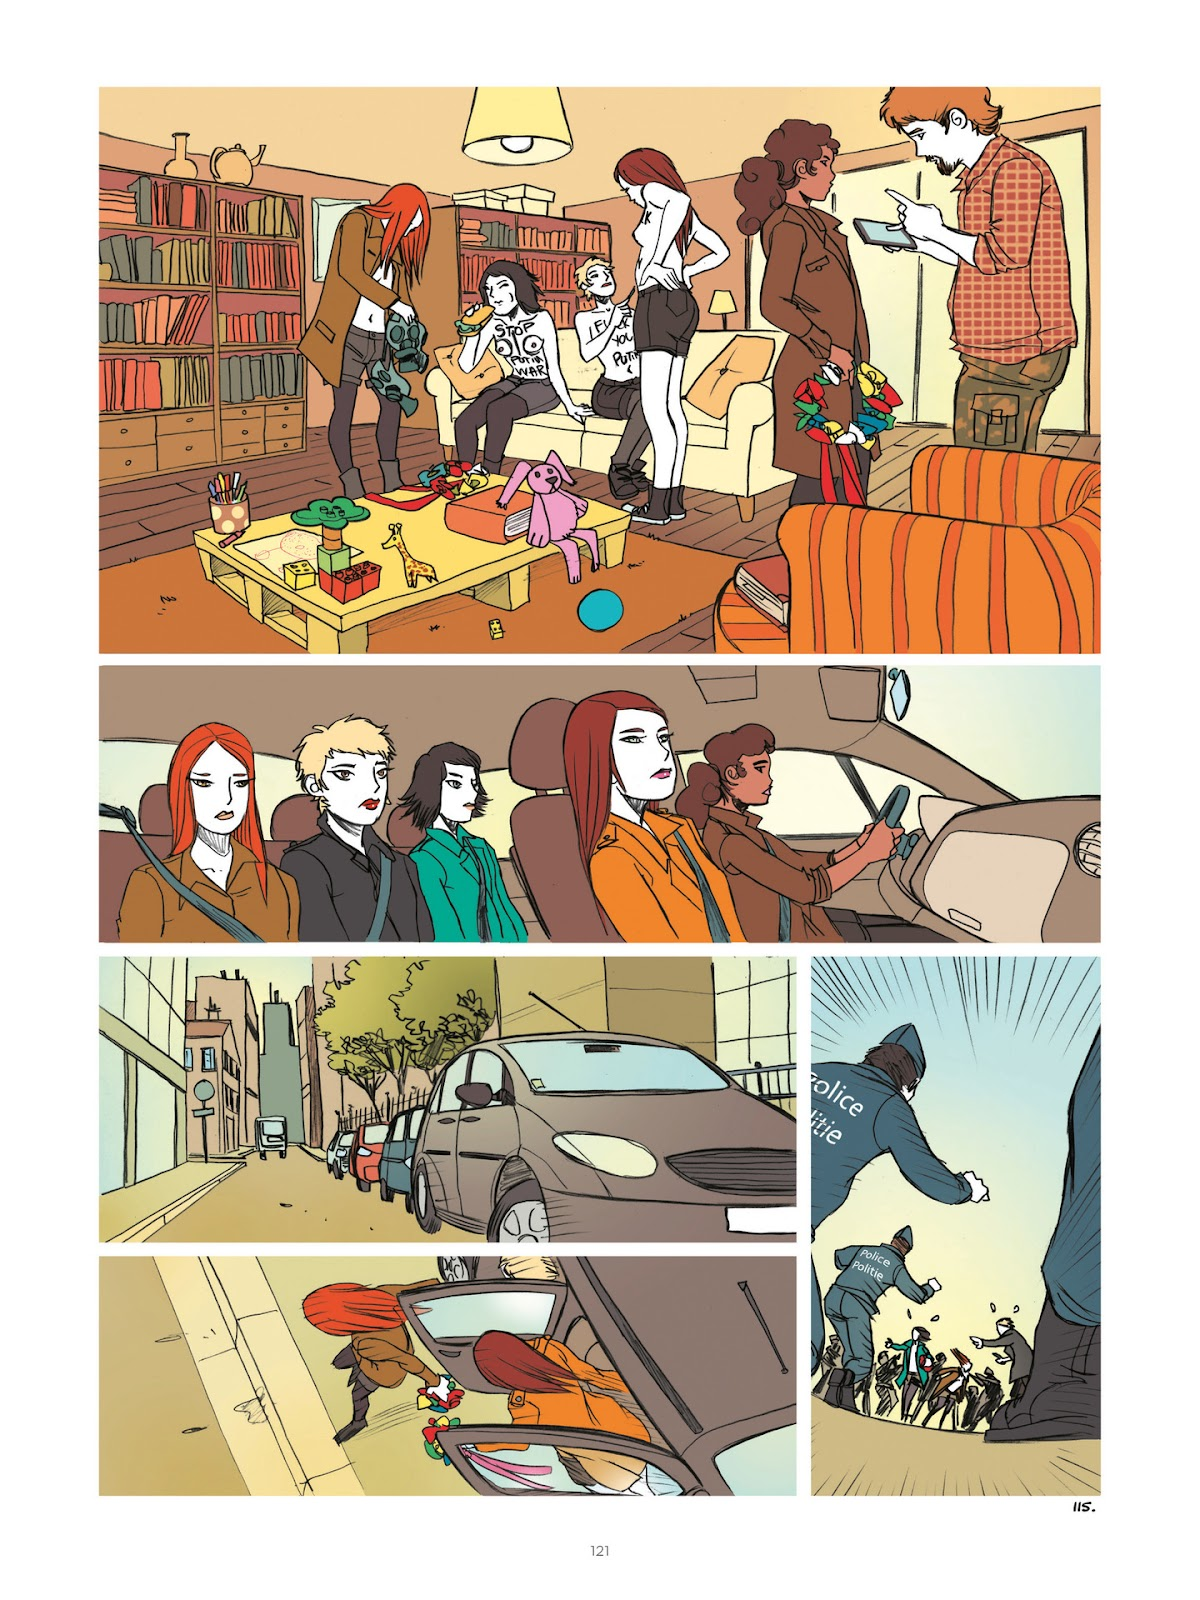 Read online Diary of A Femen comic -  Issue # TPB - 123